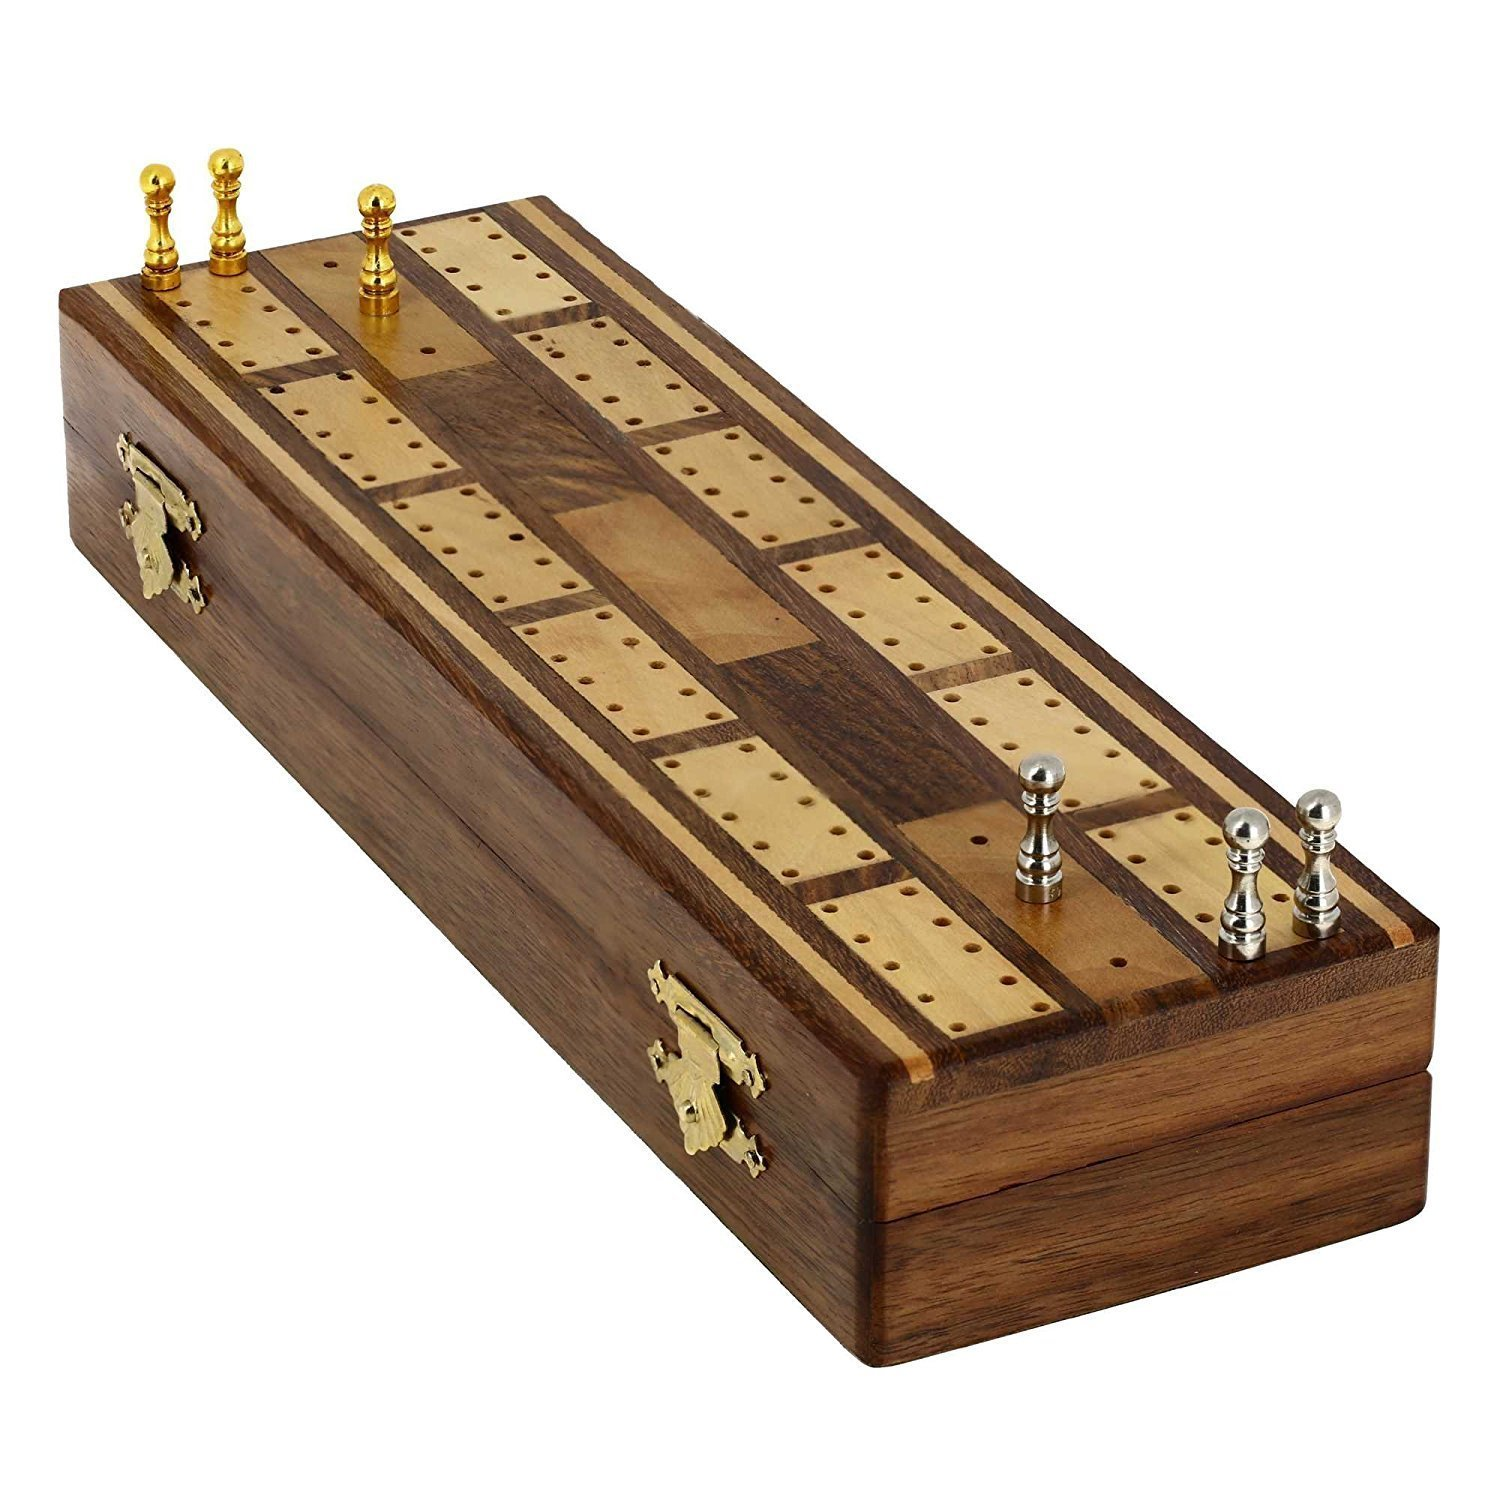 KITCHEN SUPPLIER Game Cribbage Boards Set, 2 Decks Of Cards, 6 Metal Pegs With Storage - Handmade with Premium Steam Beach Wood by Indian Artisans -Brought to you by